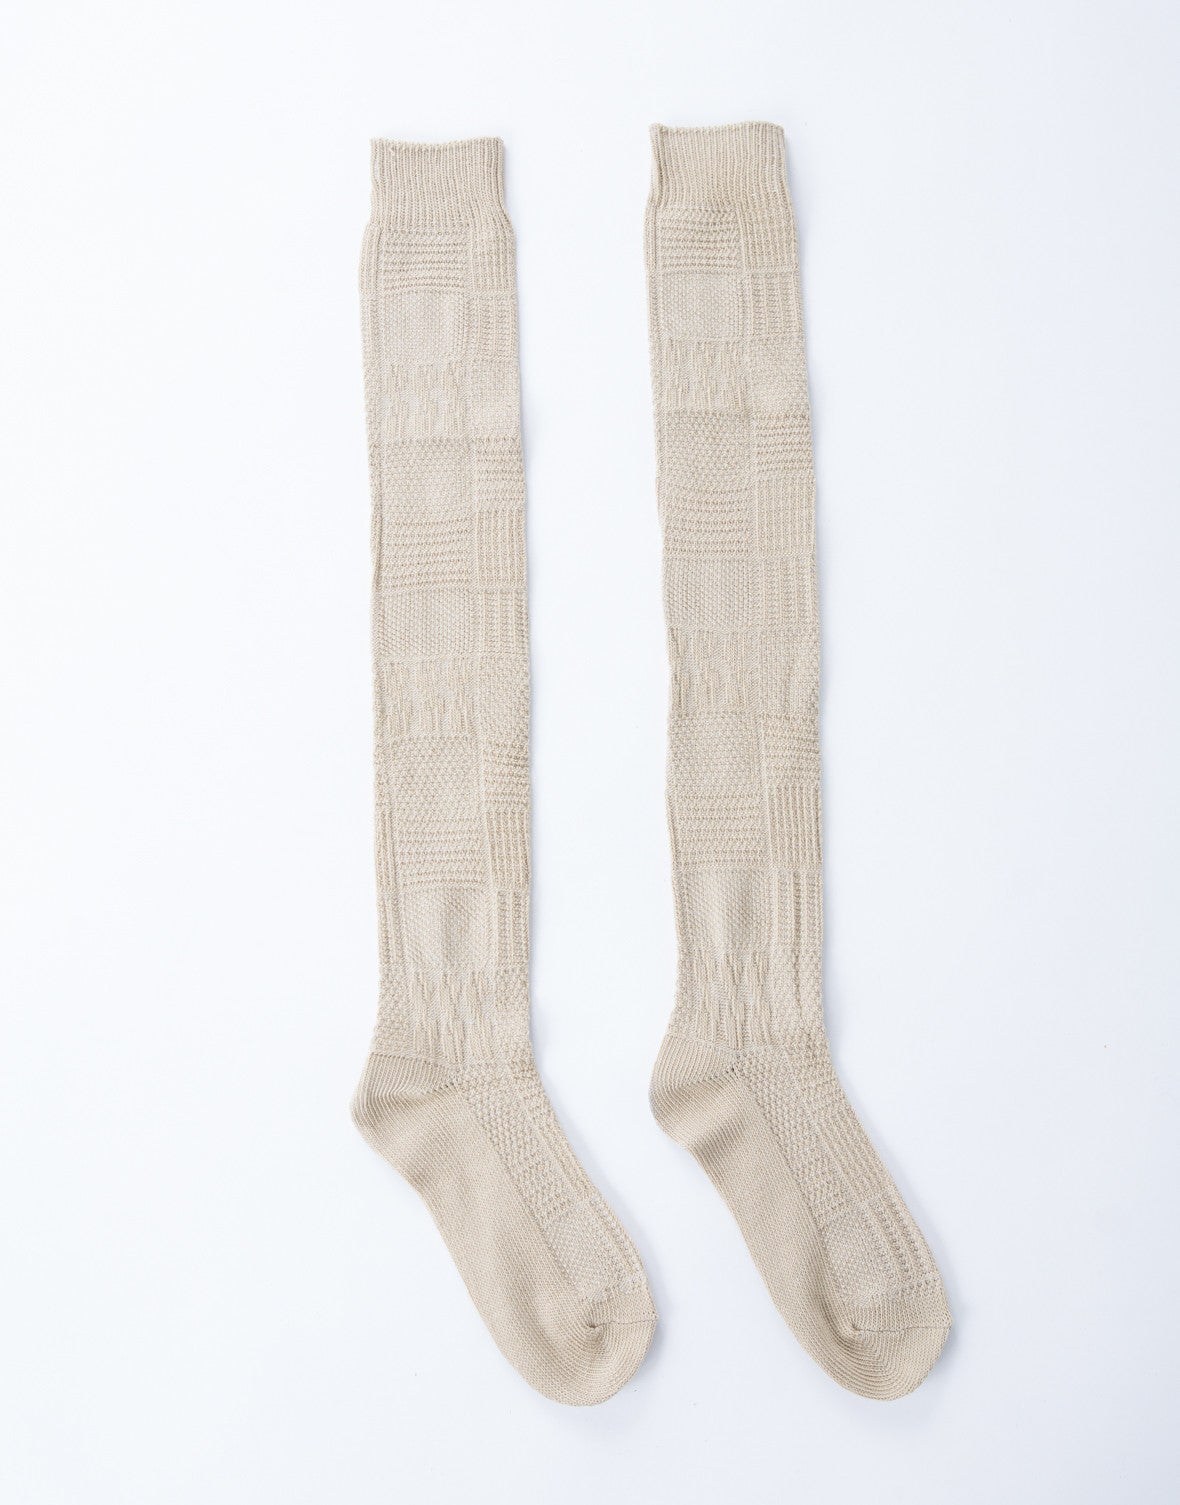 Knee High Cable Socks - Tan